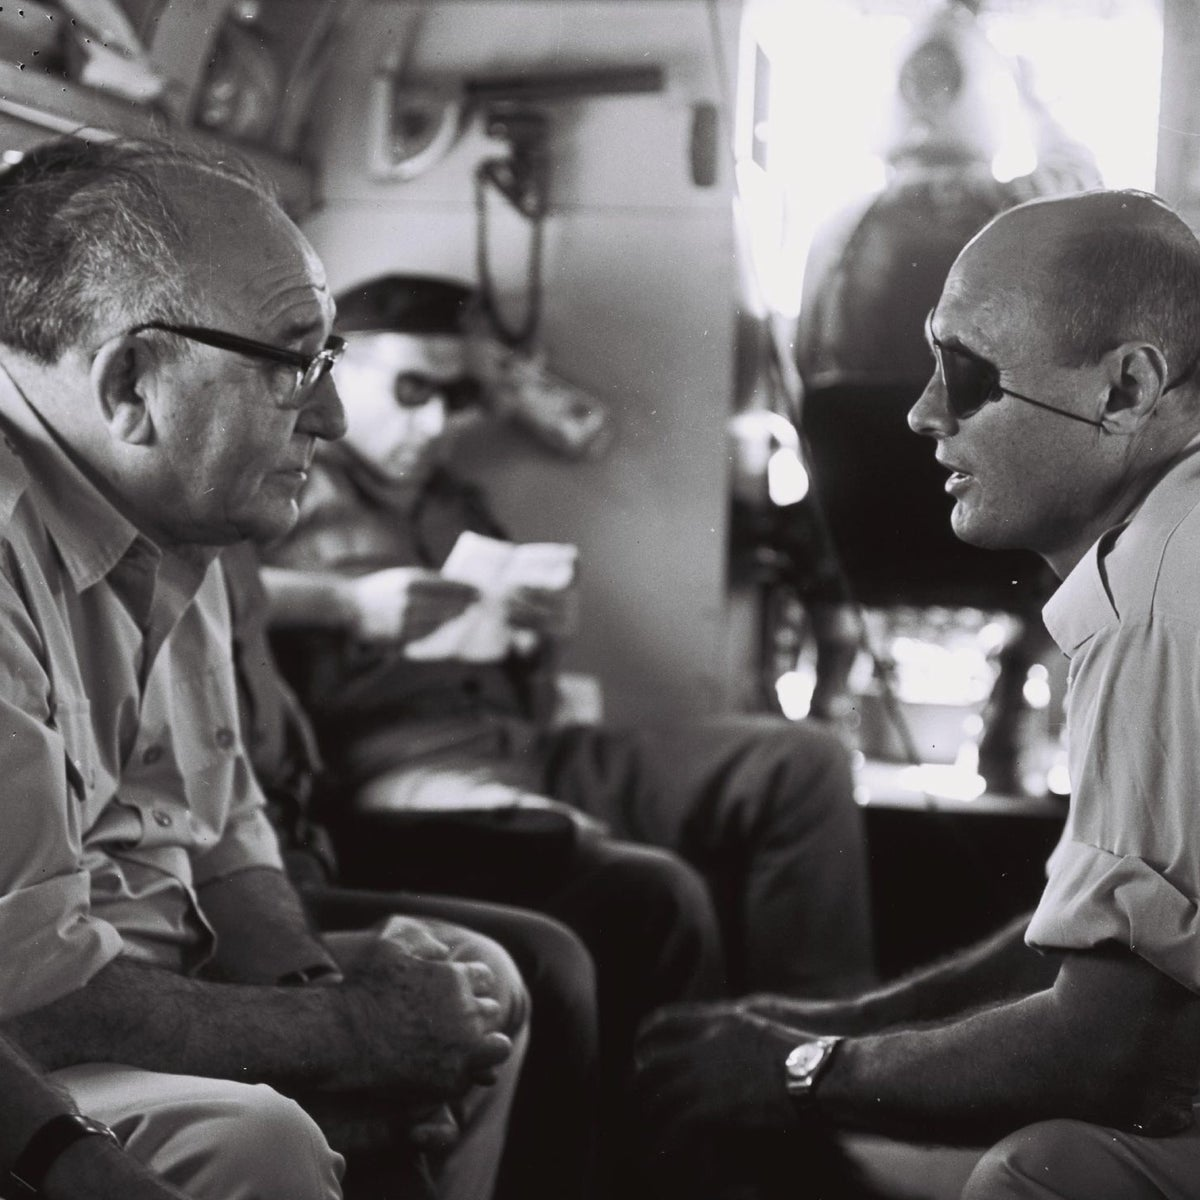 Prime Minister Levi Eshkol and Defense Minister Moshe Dayan fly over the West Bank after the Six-Day War.